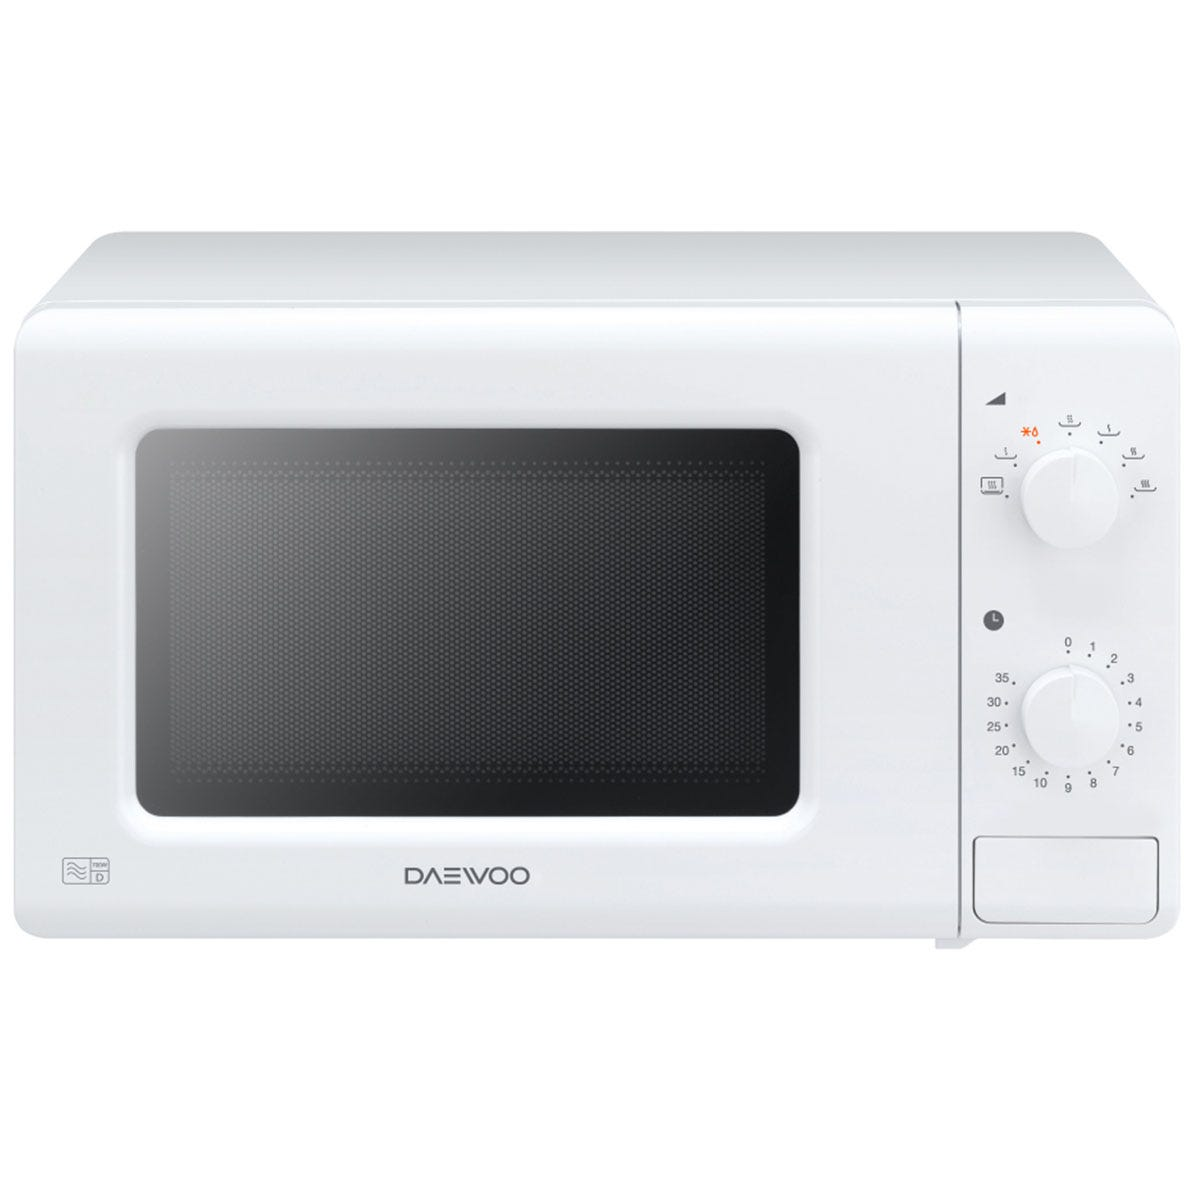 Daewoo 700W 20L Manual Microwave Oven - White